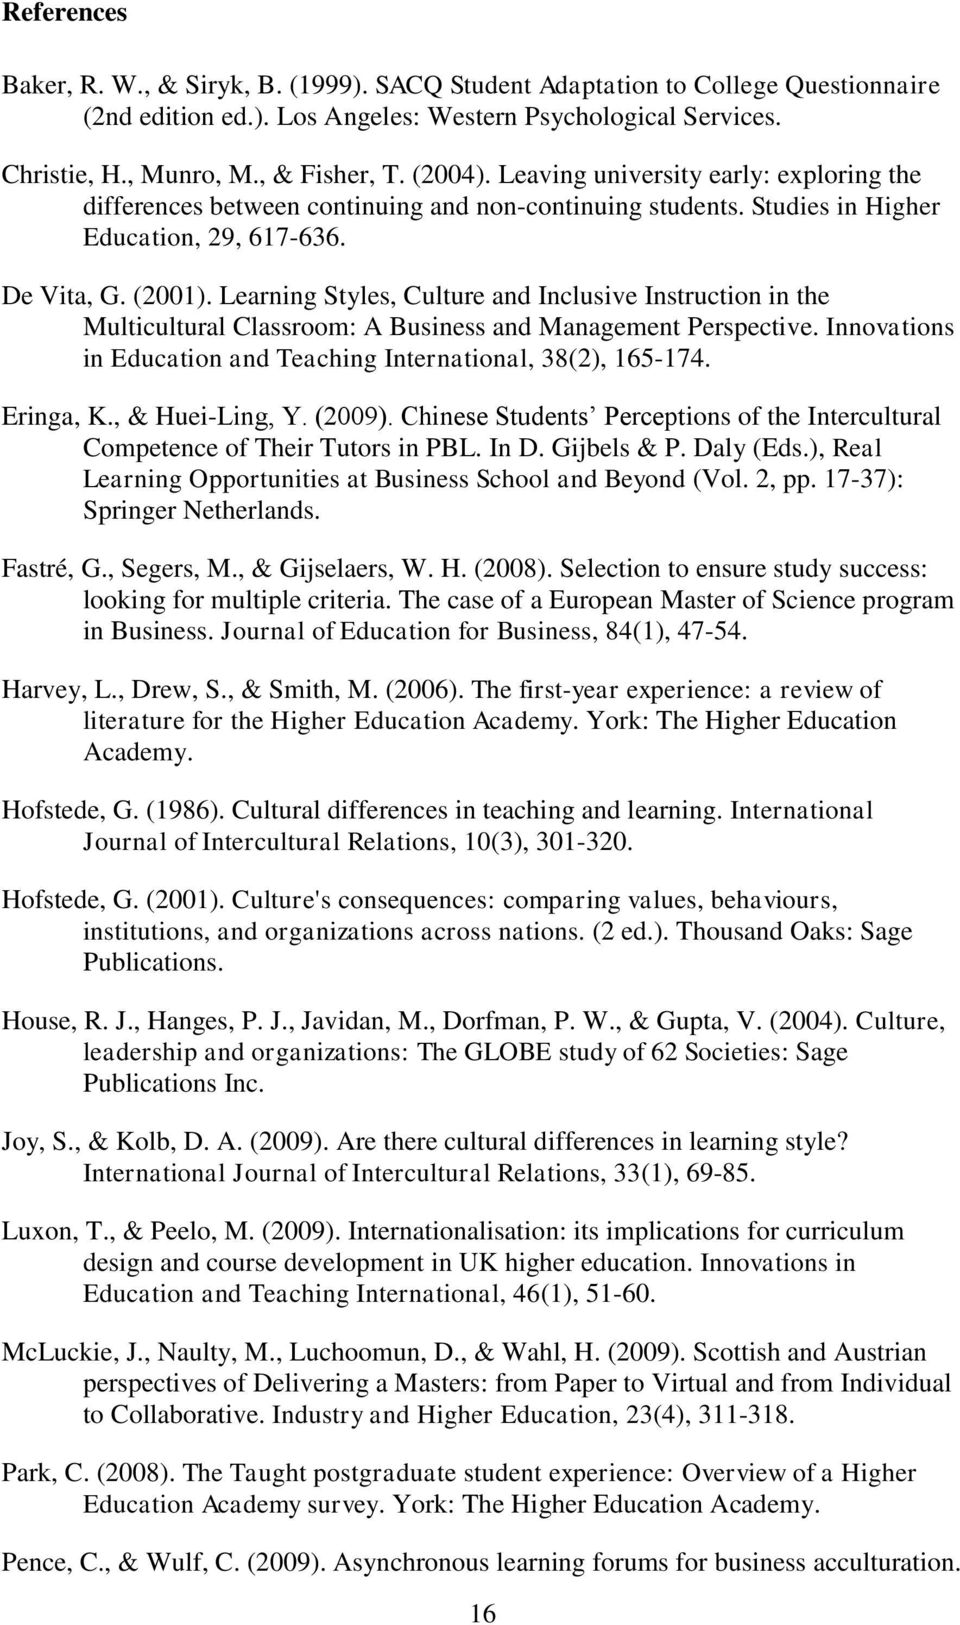 Learning Styles, Culture and Inclusive Instruction in the Multicultural Classroom: A Business and Management Perspective. Innovations in Education and Teaching International, 38(2), 165-174.